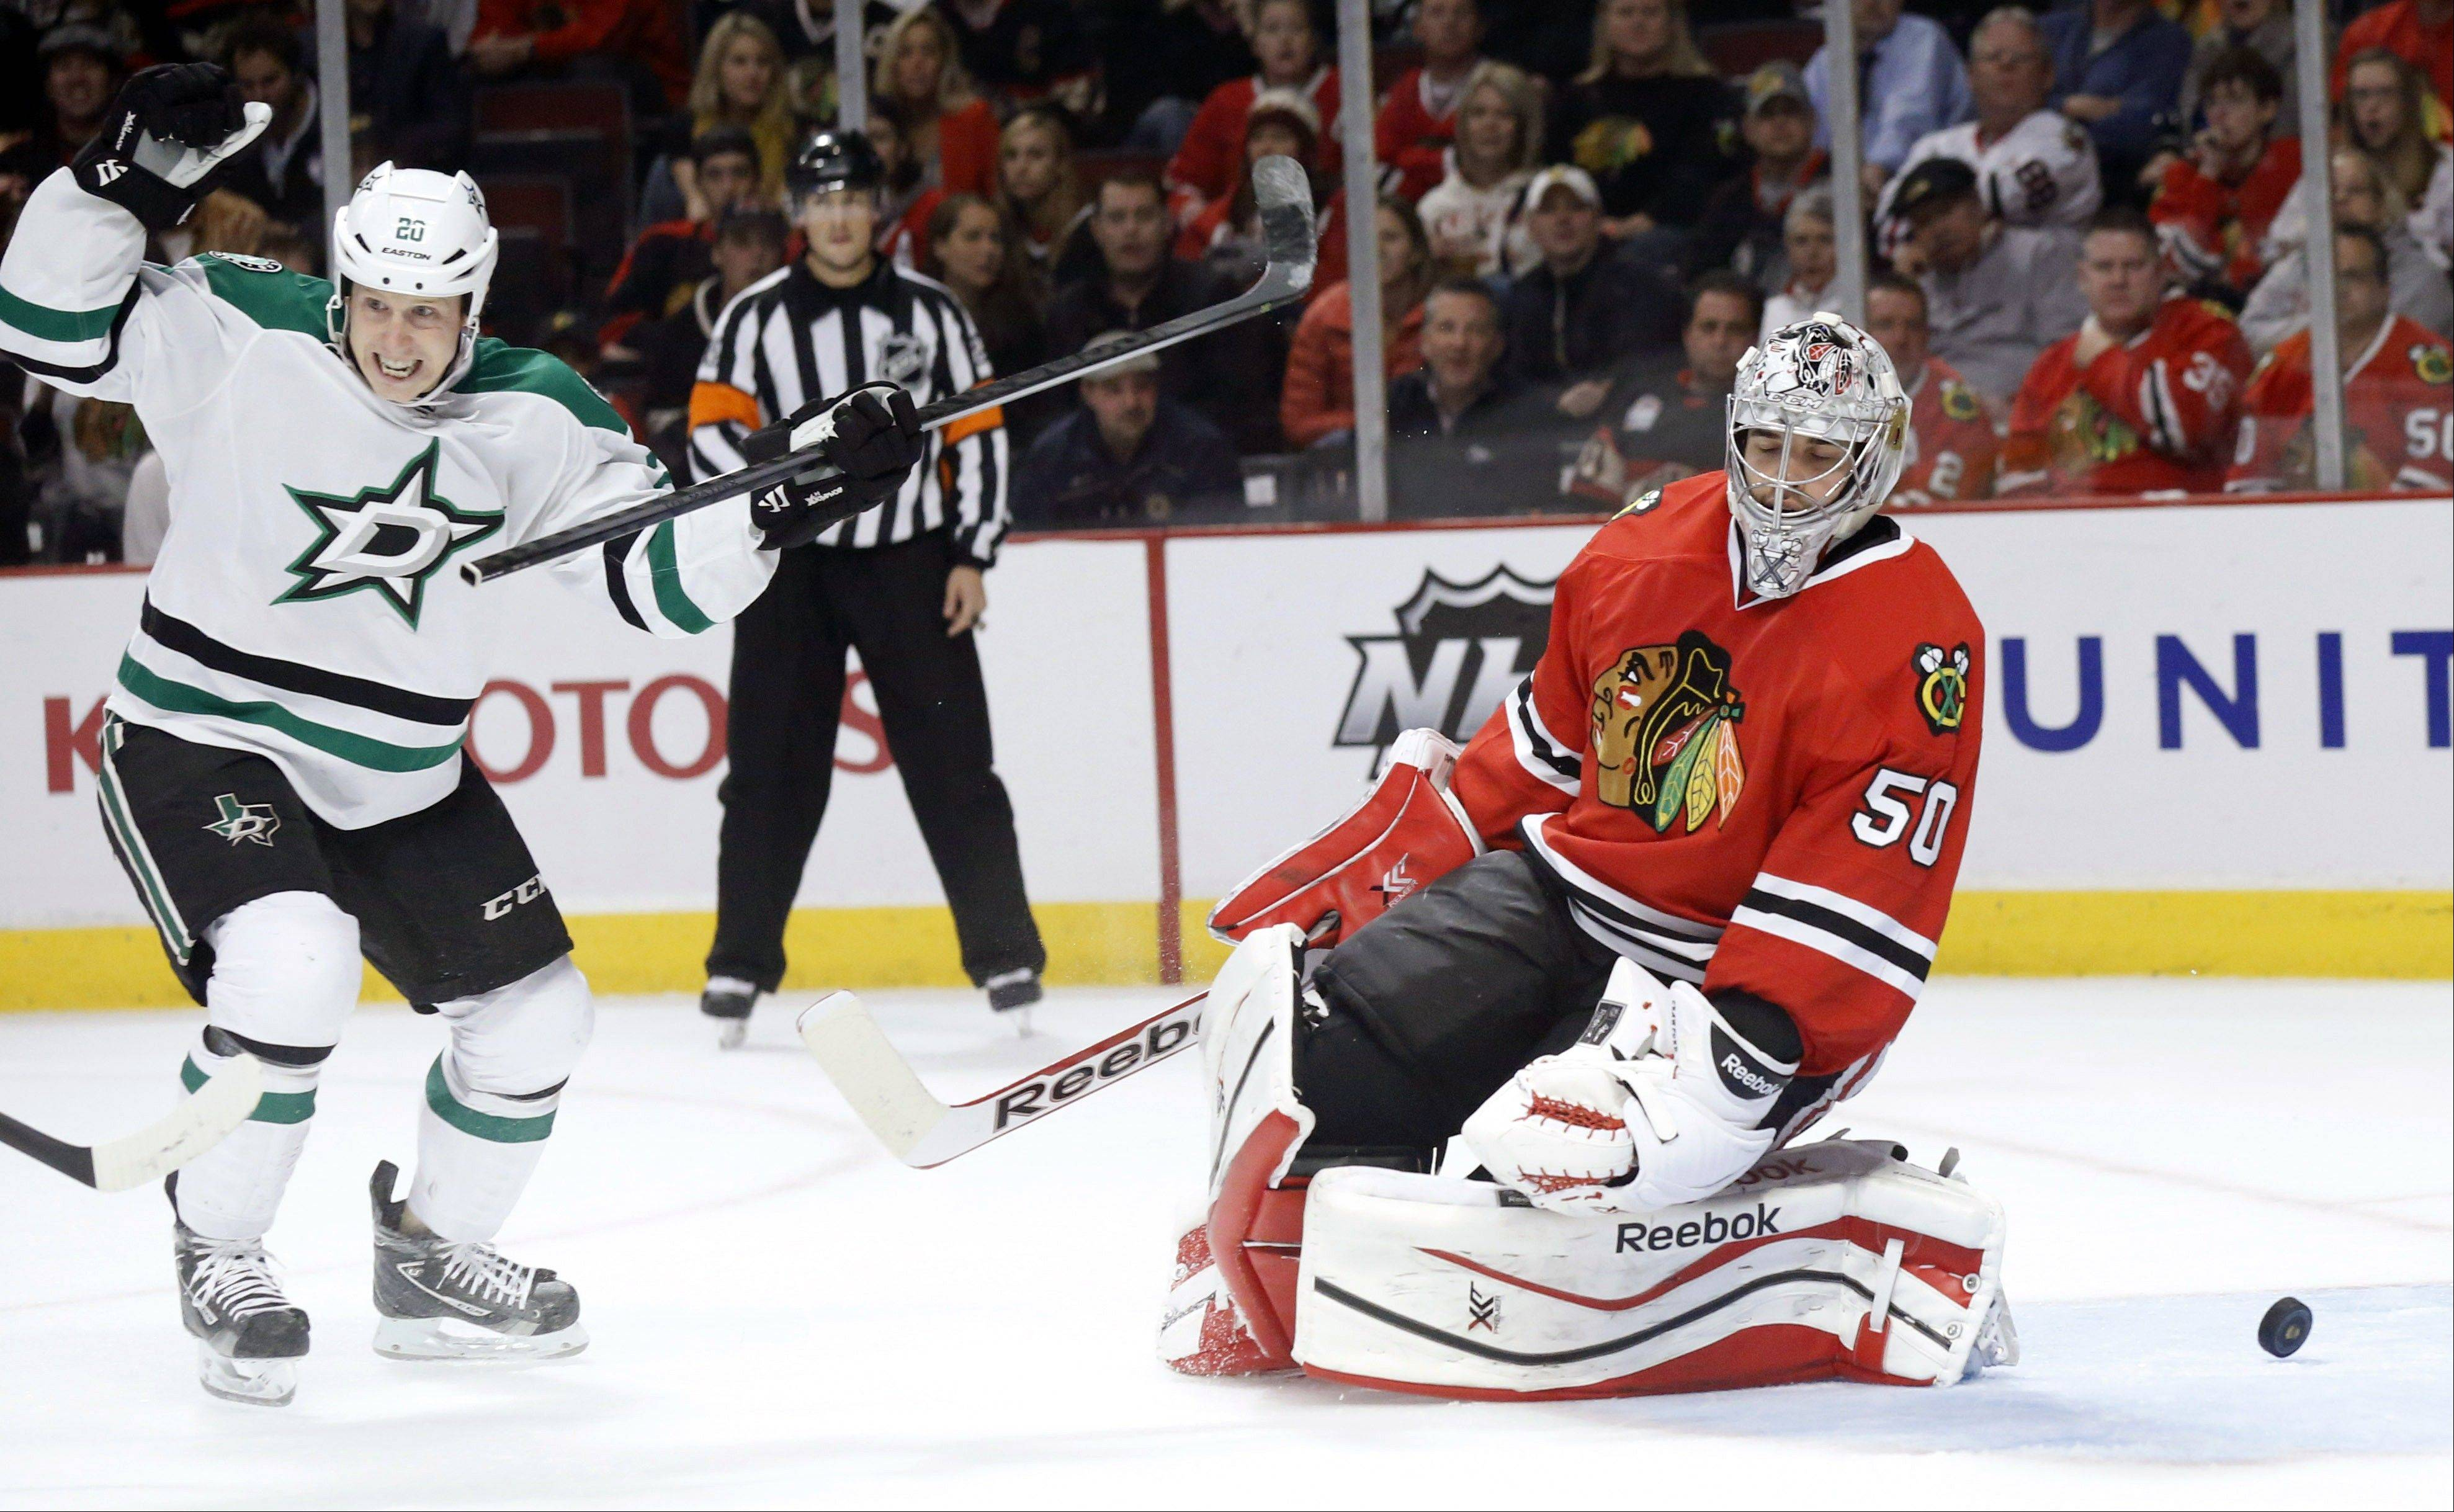 Stars center Cody Eakin, left, celebrates Valeri Nichushkin's goal as the puck bounces back out of the net behind Chicago Blackhawks goalie Corey Crawford during the first period of an NHL hockey game Tuesday, Dec. 3, 2013, in Chicago.